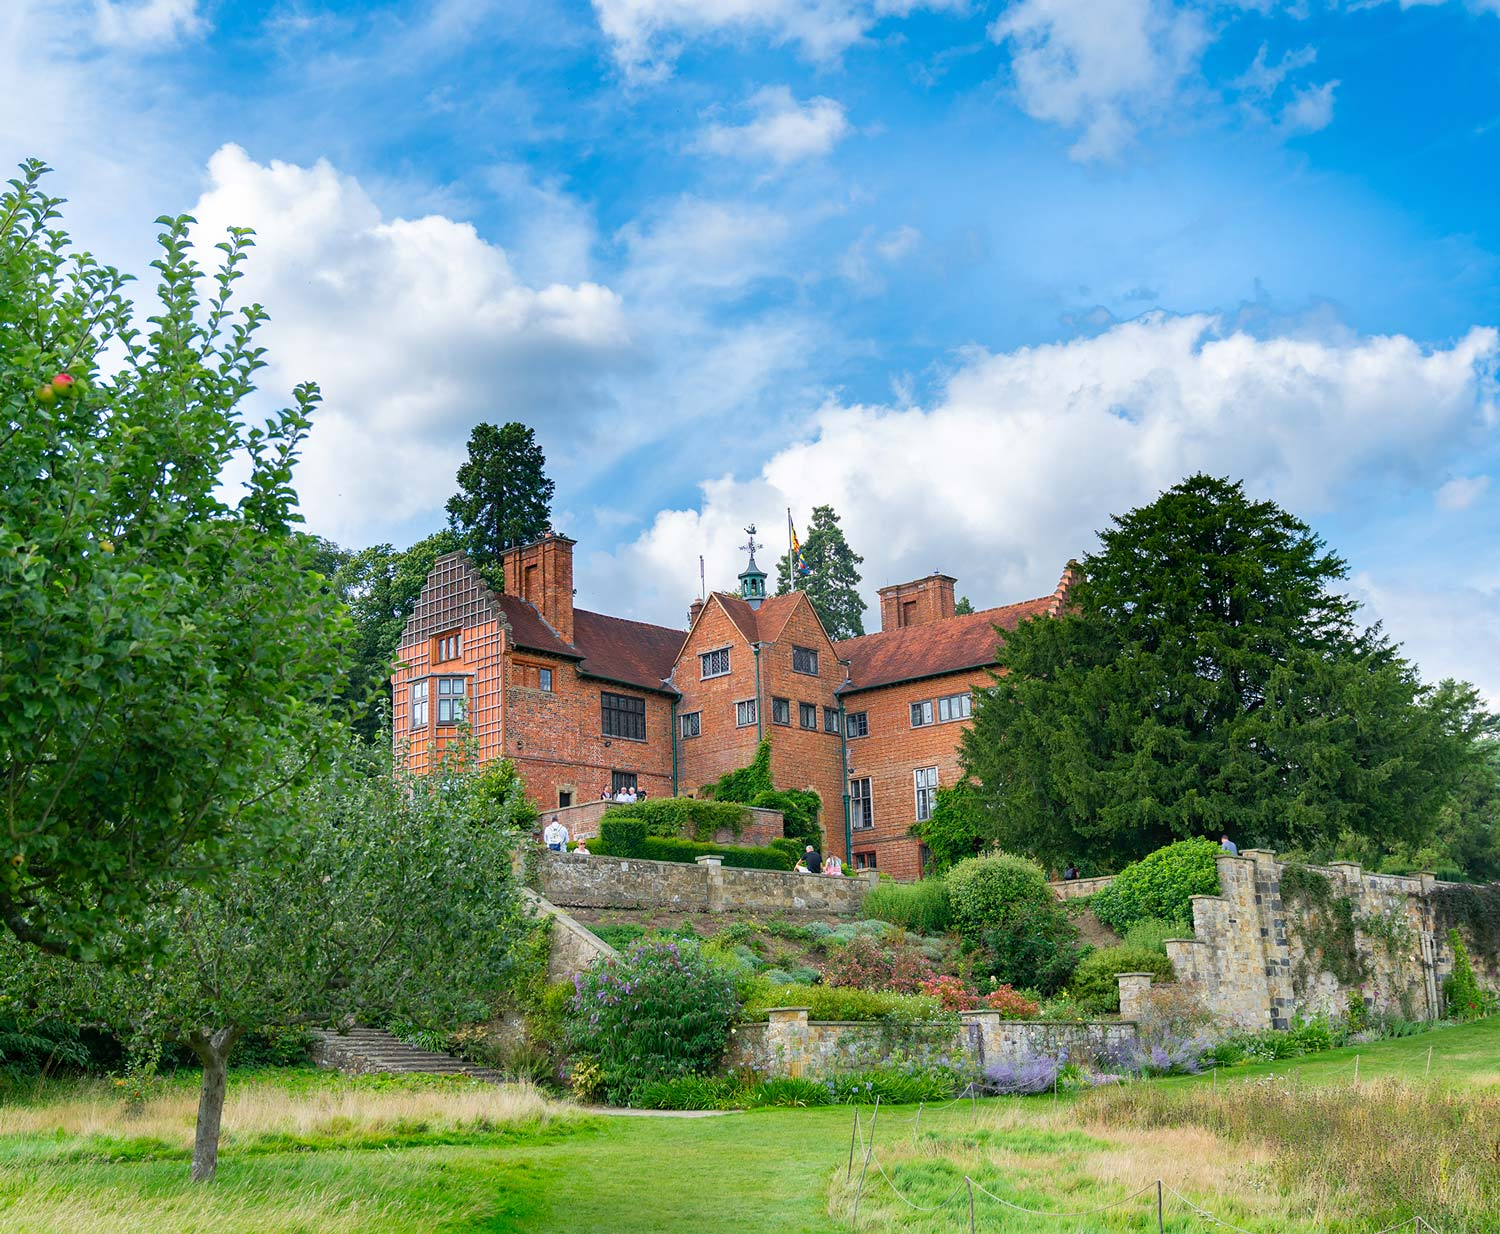 Chartwell House in Westerham